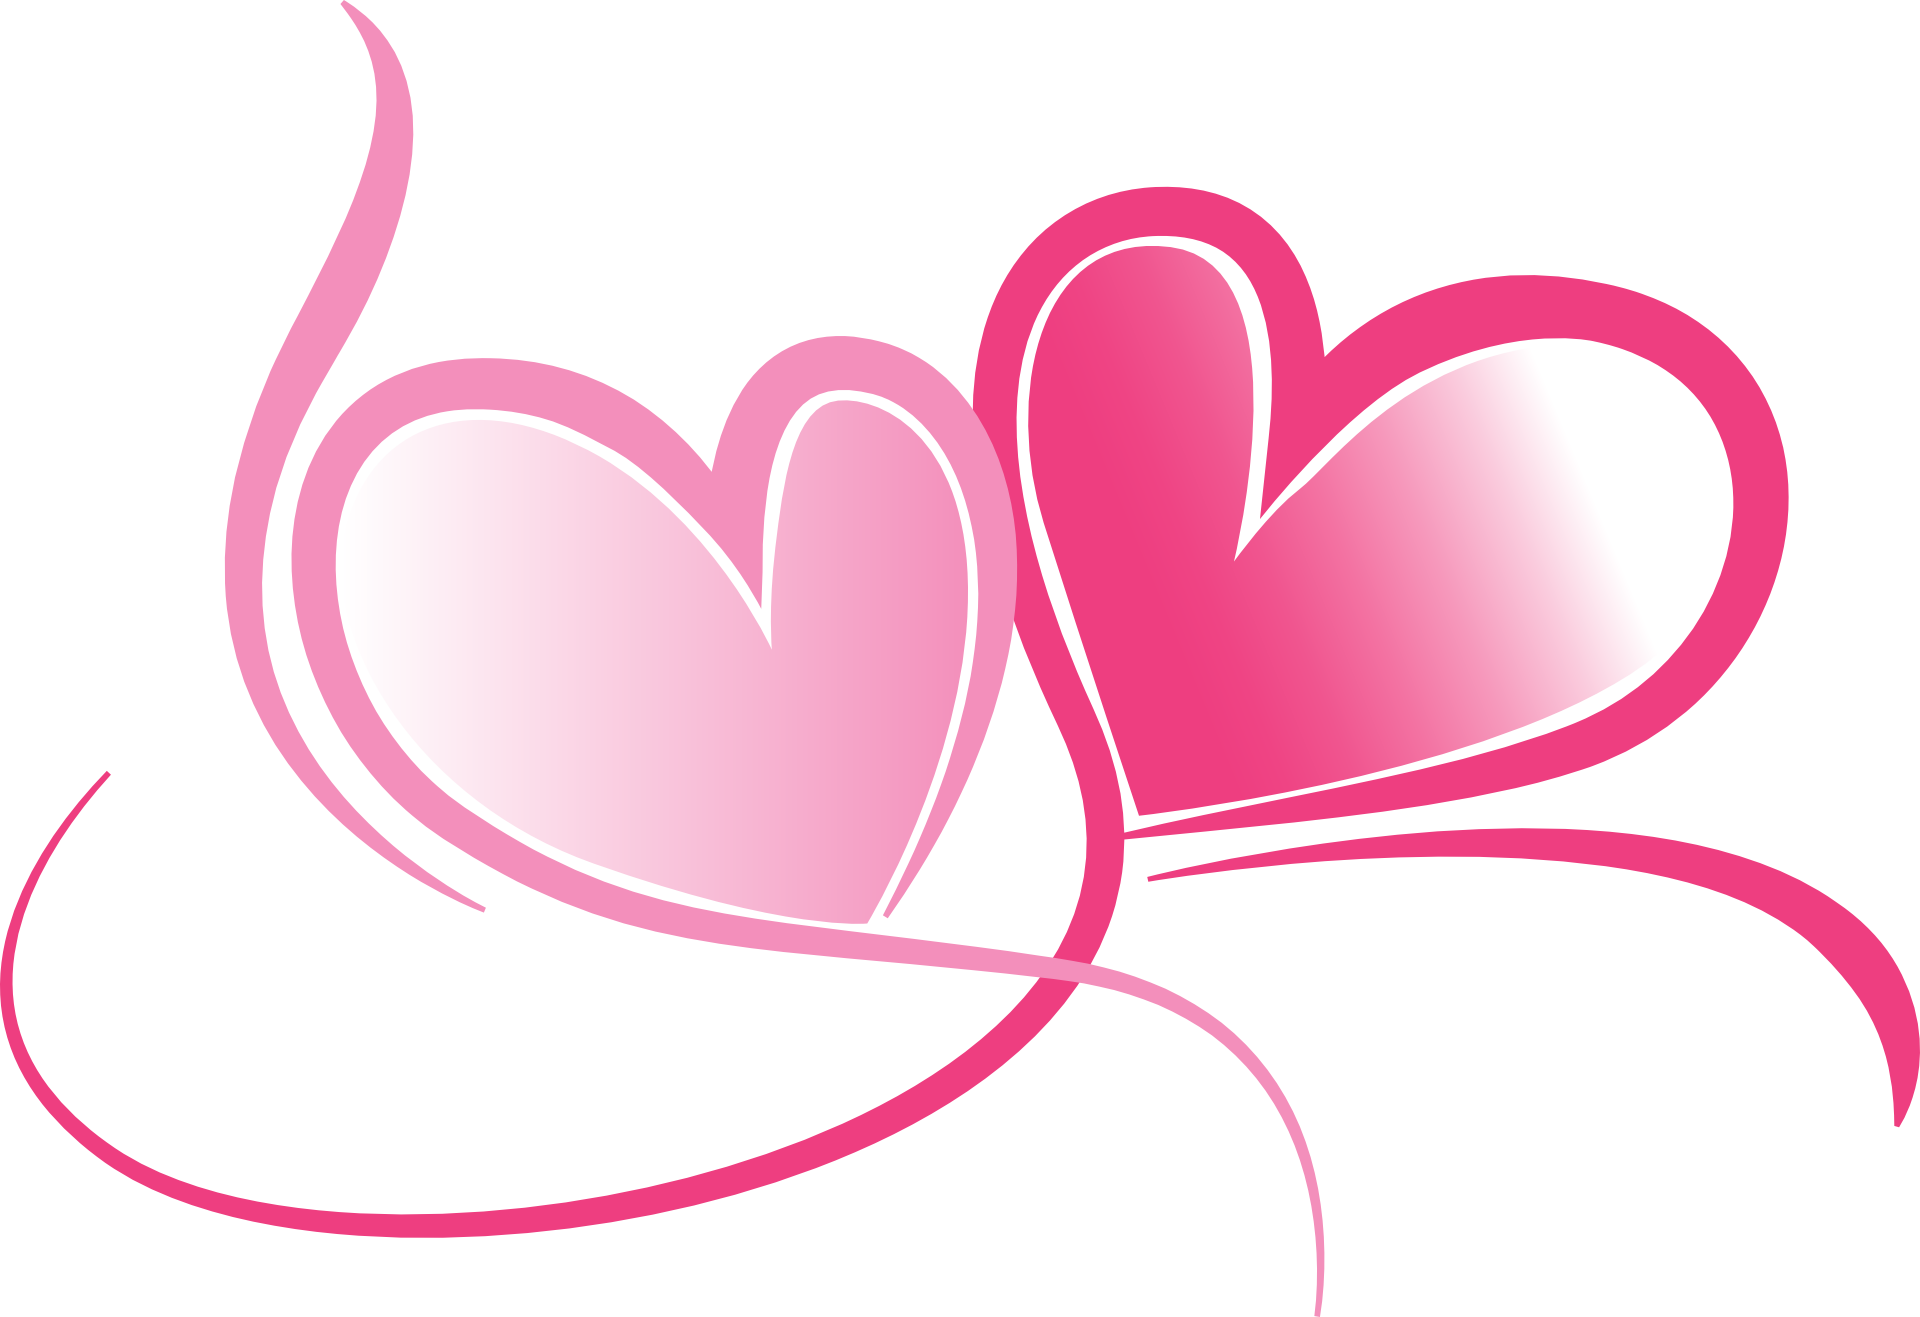 Wedding Hearts Clipart Wedding Hearts - ClipA...